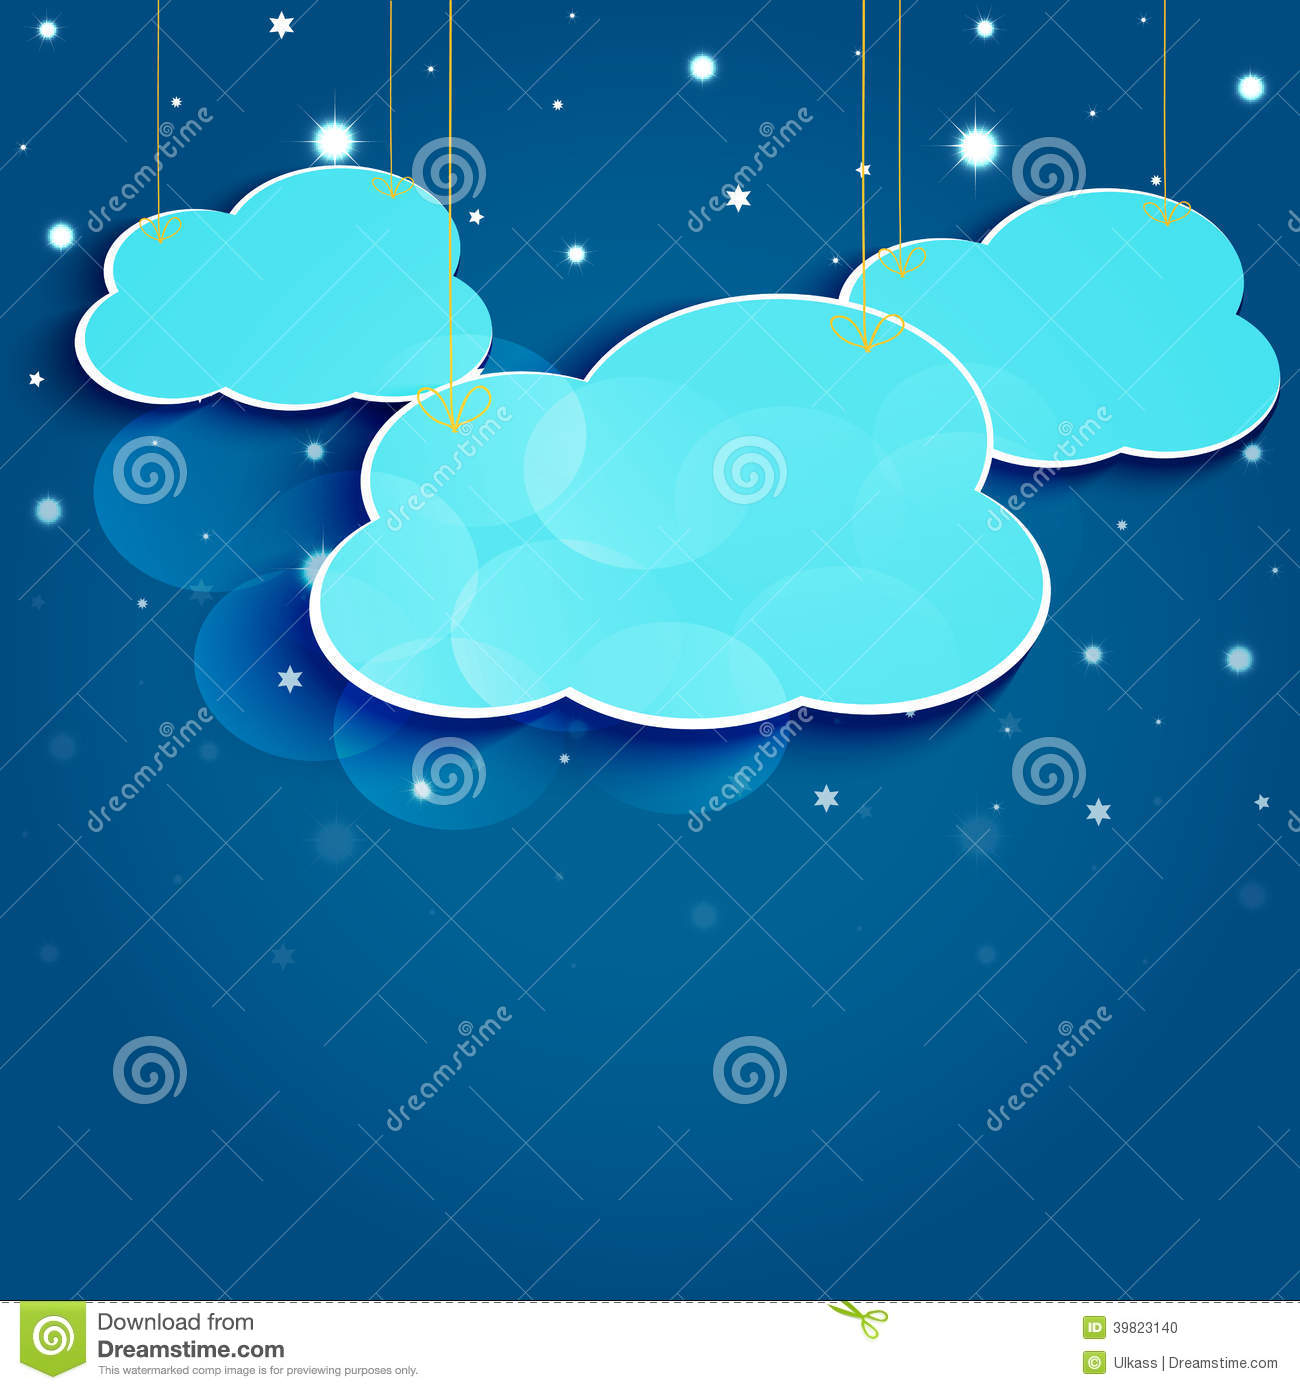 Cartoon Stars And Clouds In The Night Sky. Stock Vector.